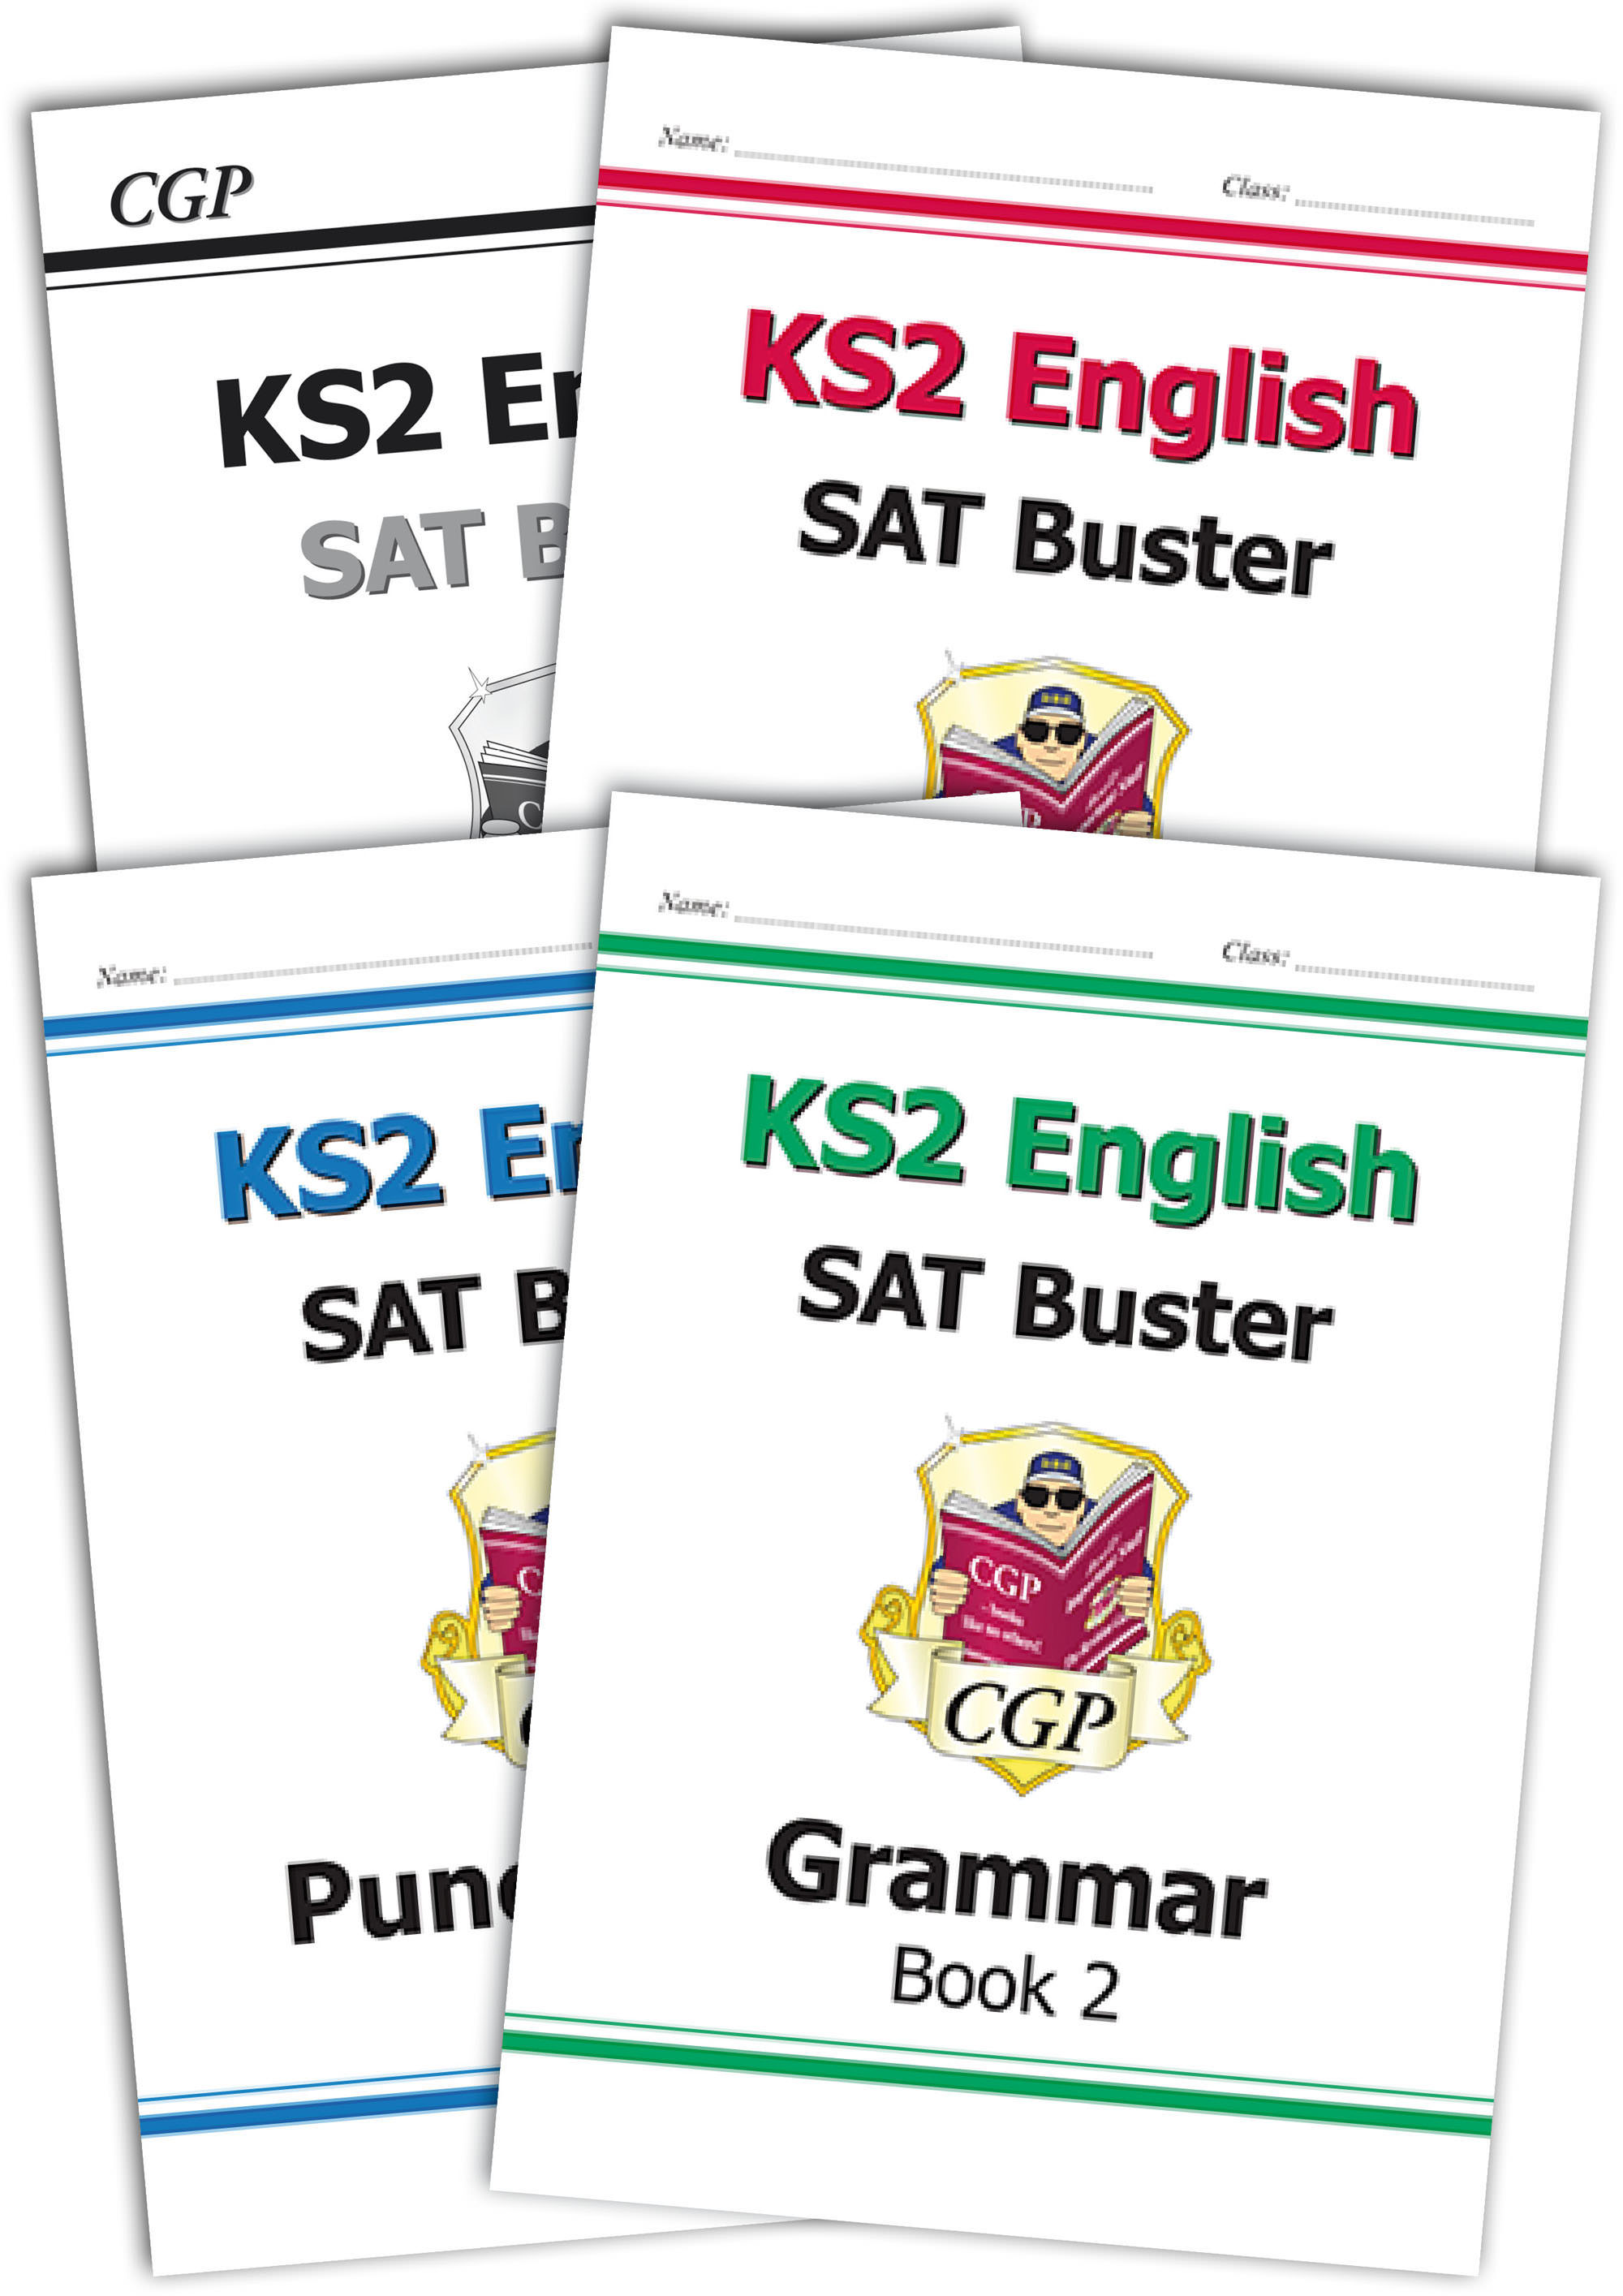 E6GB222 - The Complete KS2 English SPaG SAT Buster Book 2 Bundle - incl answers (for the 2020 tests)